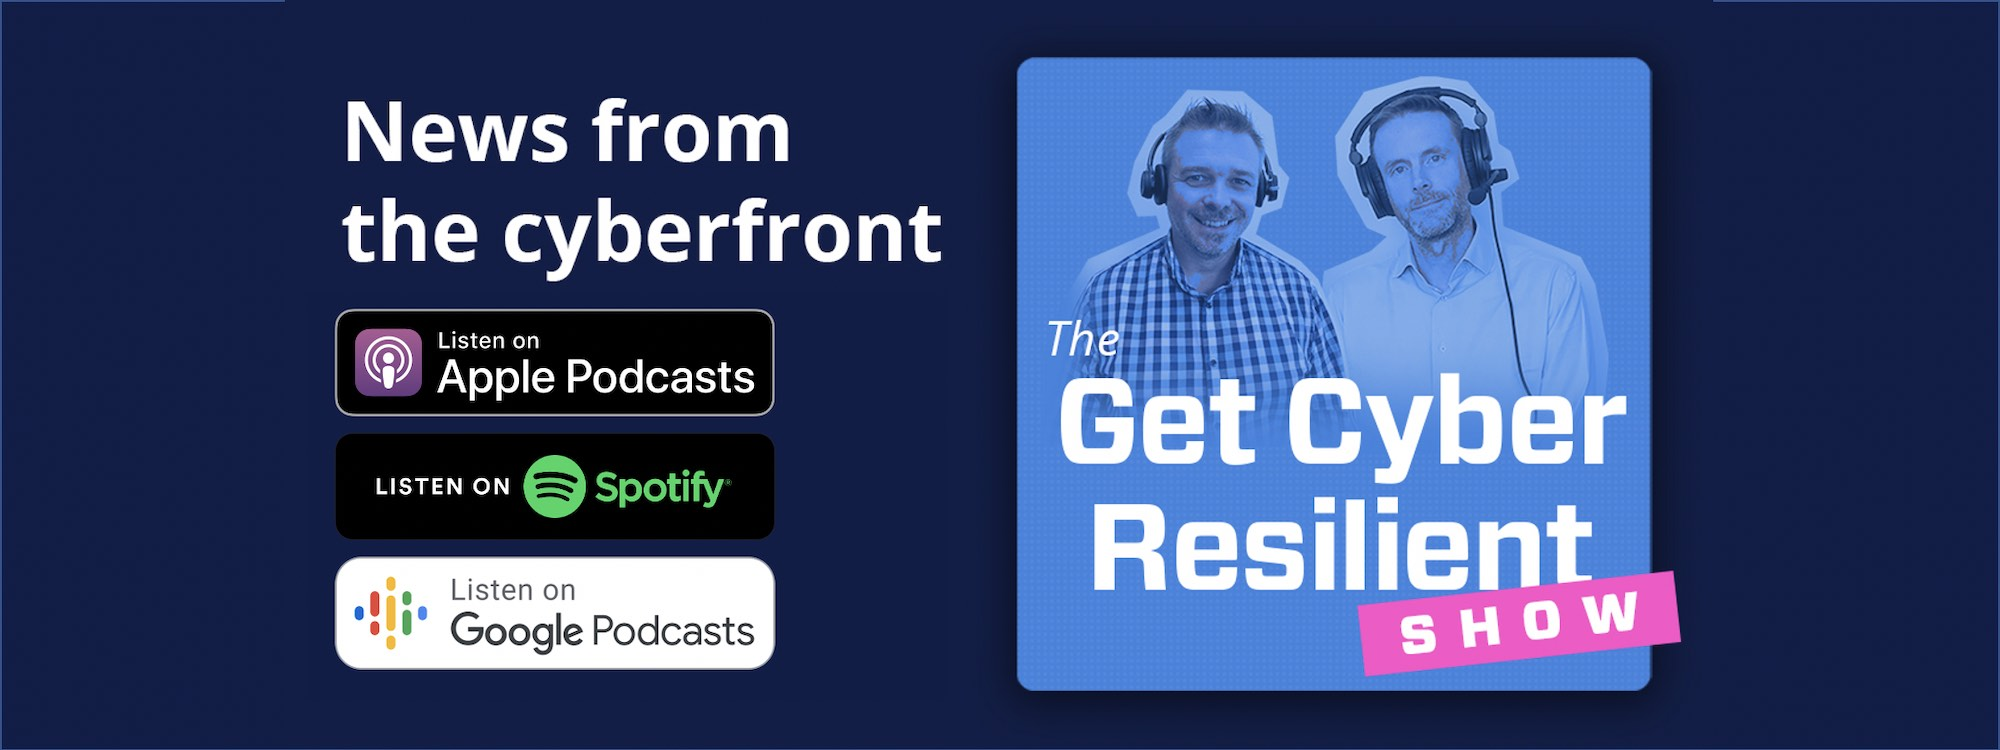 The Get Cyber Resilient Show Episode #24